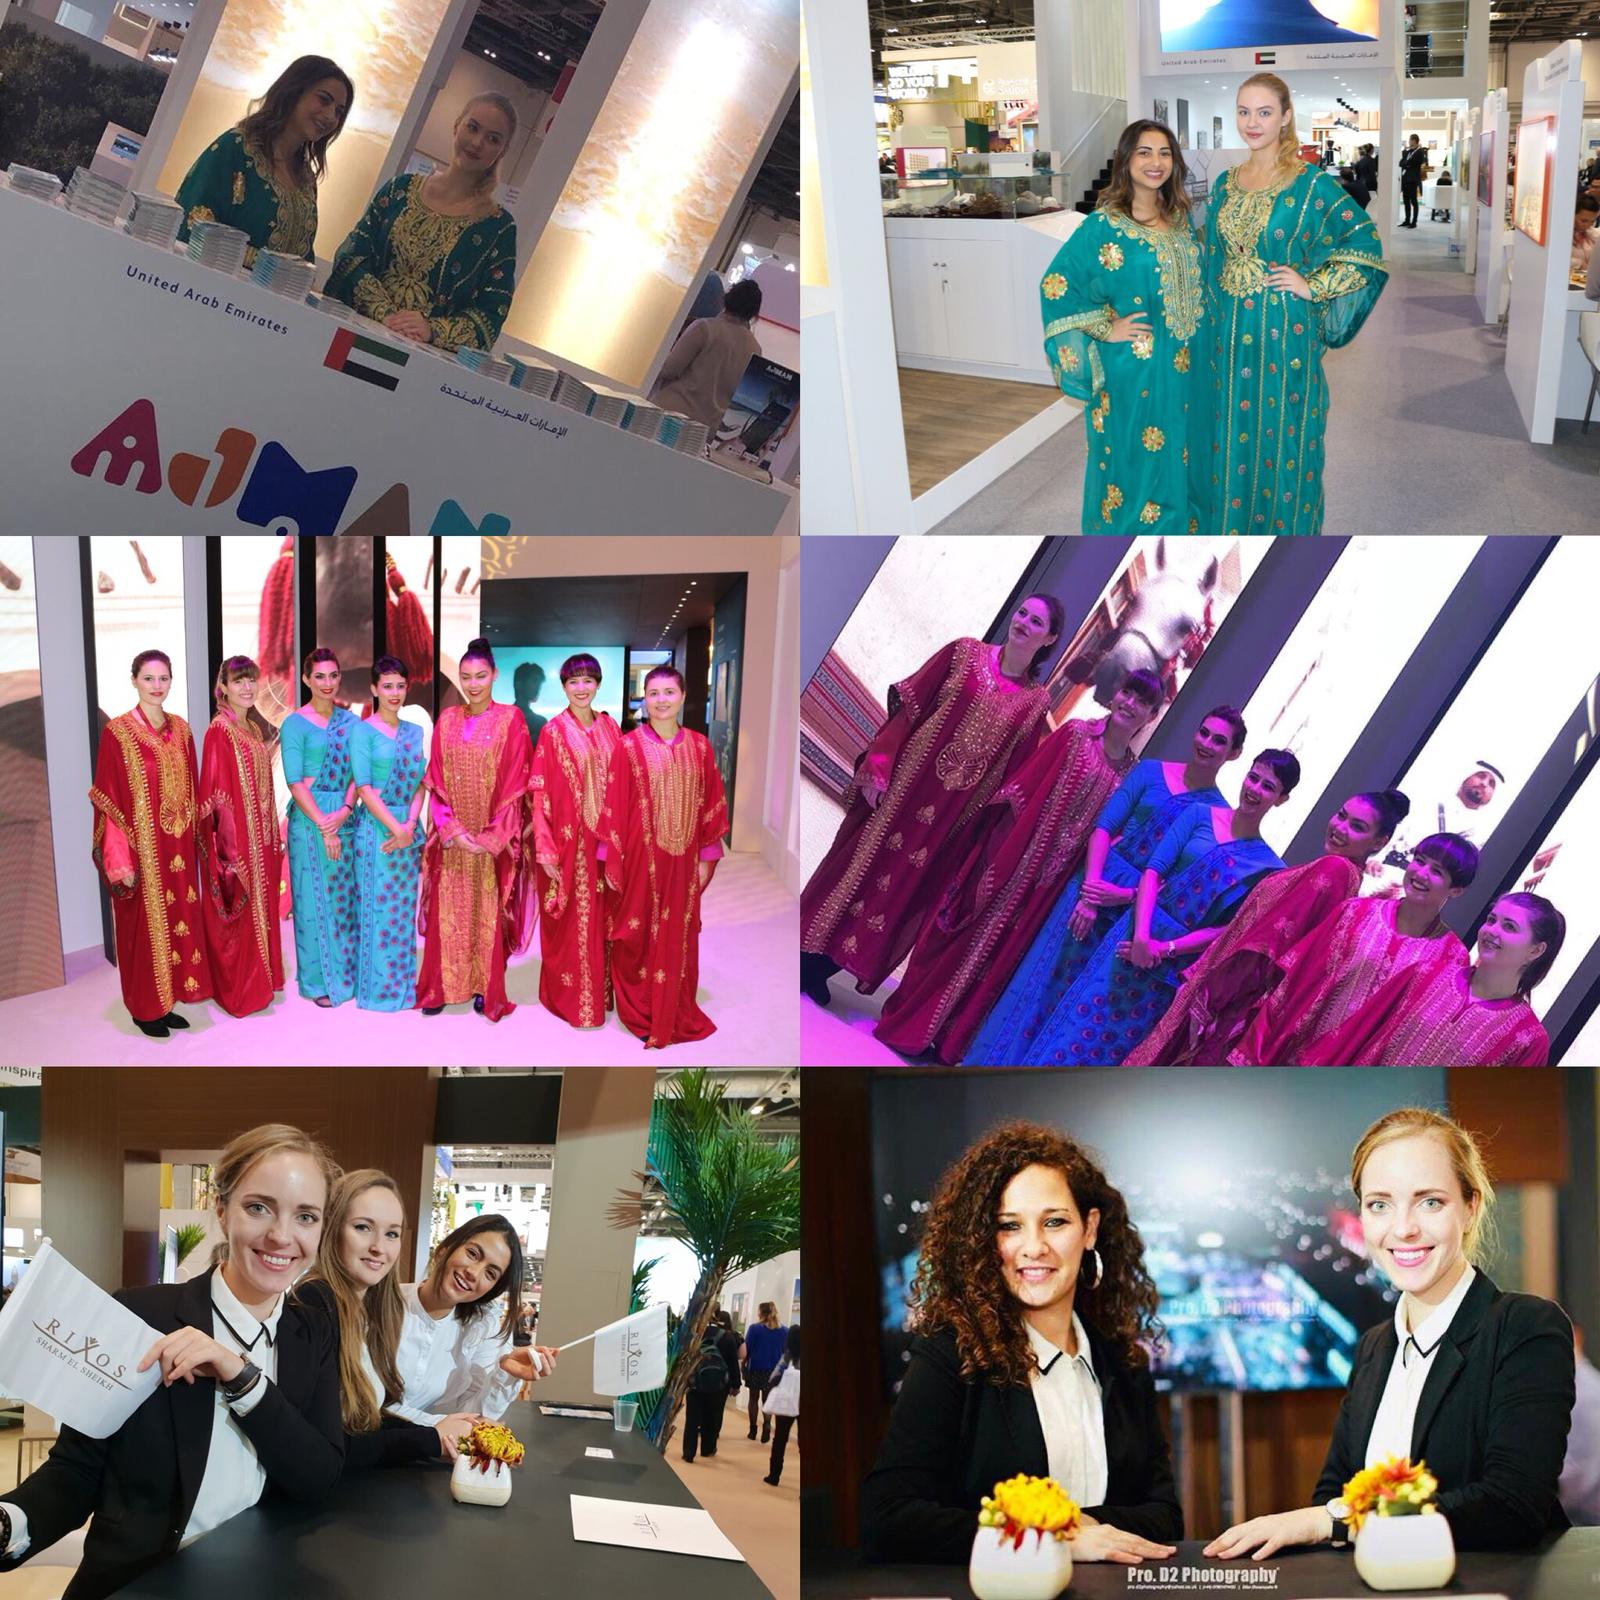 Promotion Staff for World Travel Market at ExCel London